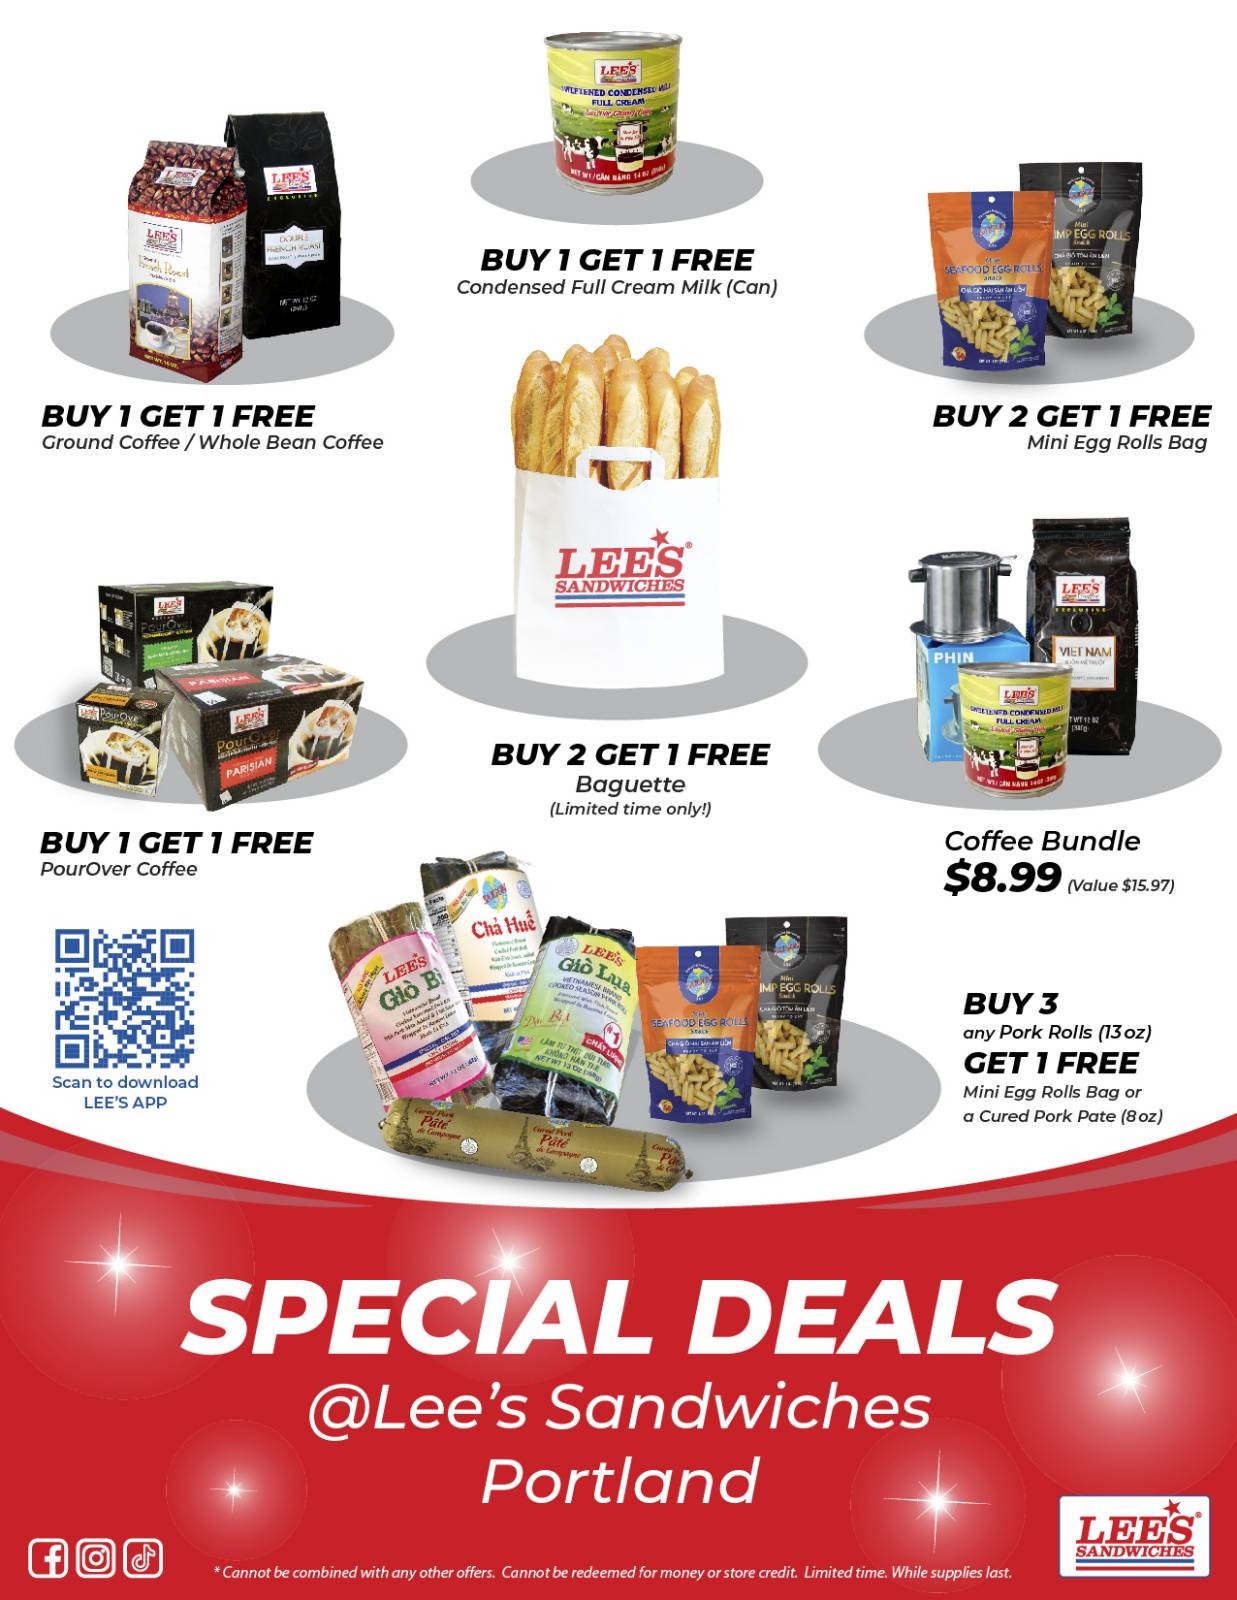 Special Deals only at Portland from 5/17/2021! Limited Time! While Supplies Last!